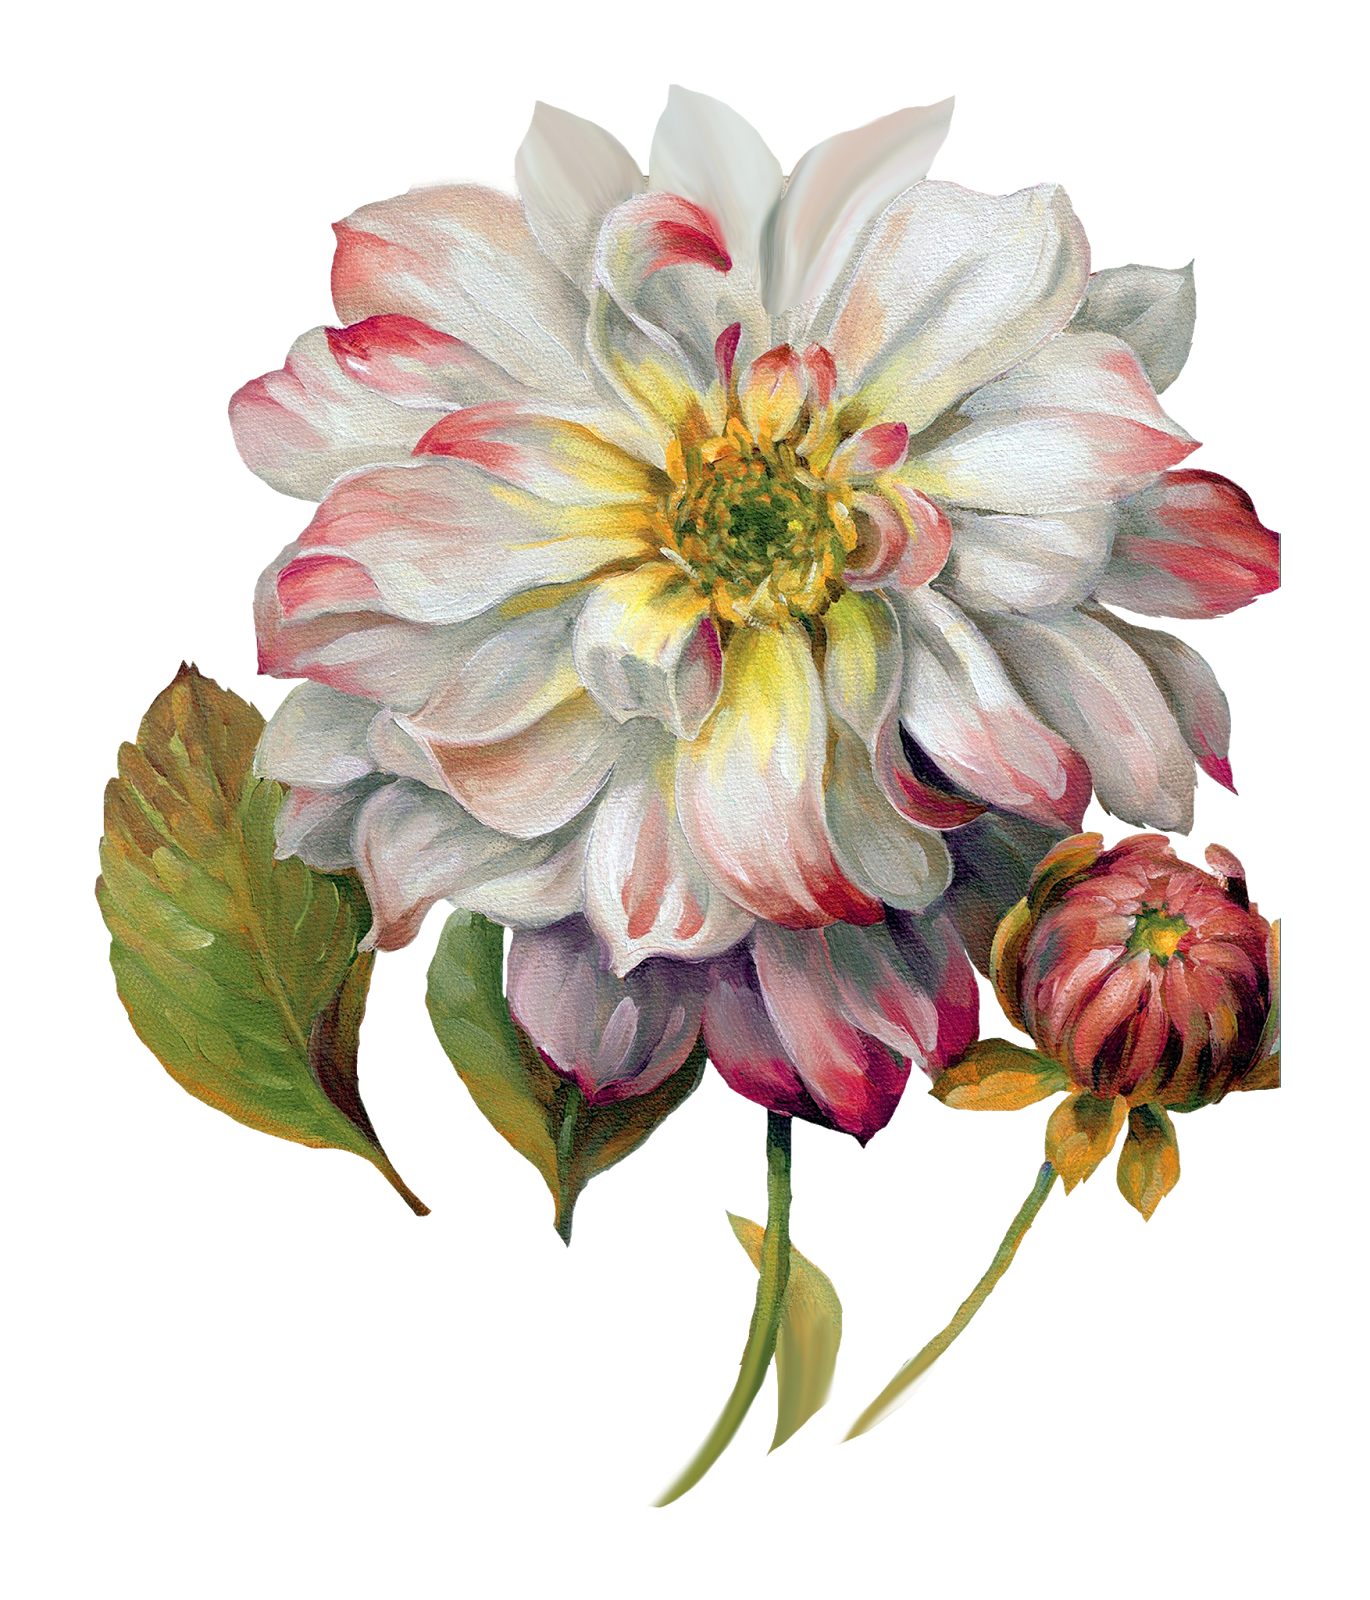 image library stock zinnia drawing pastel #119031172